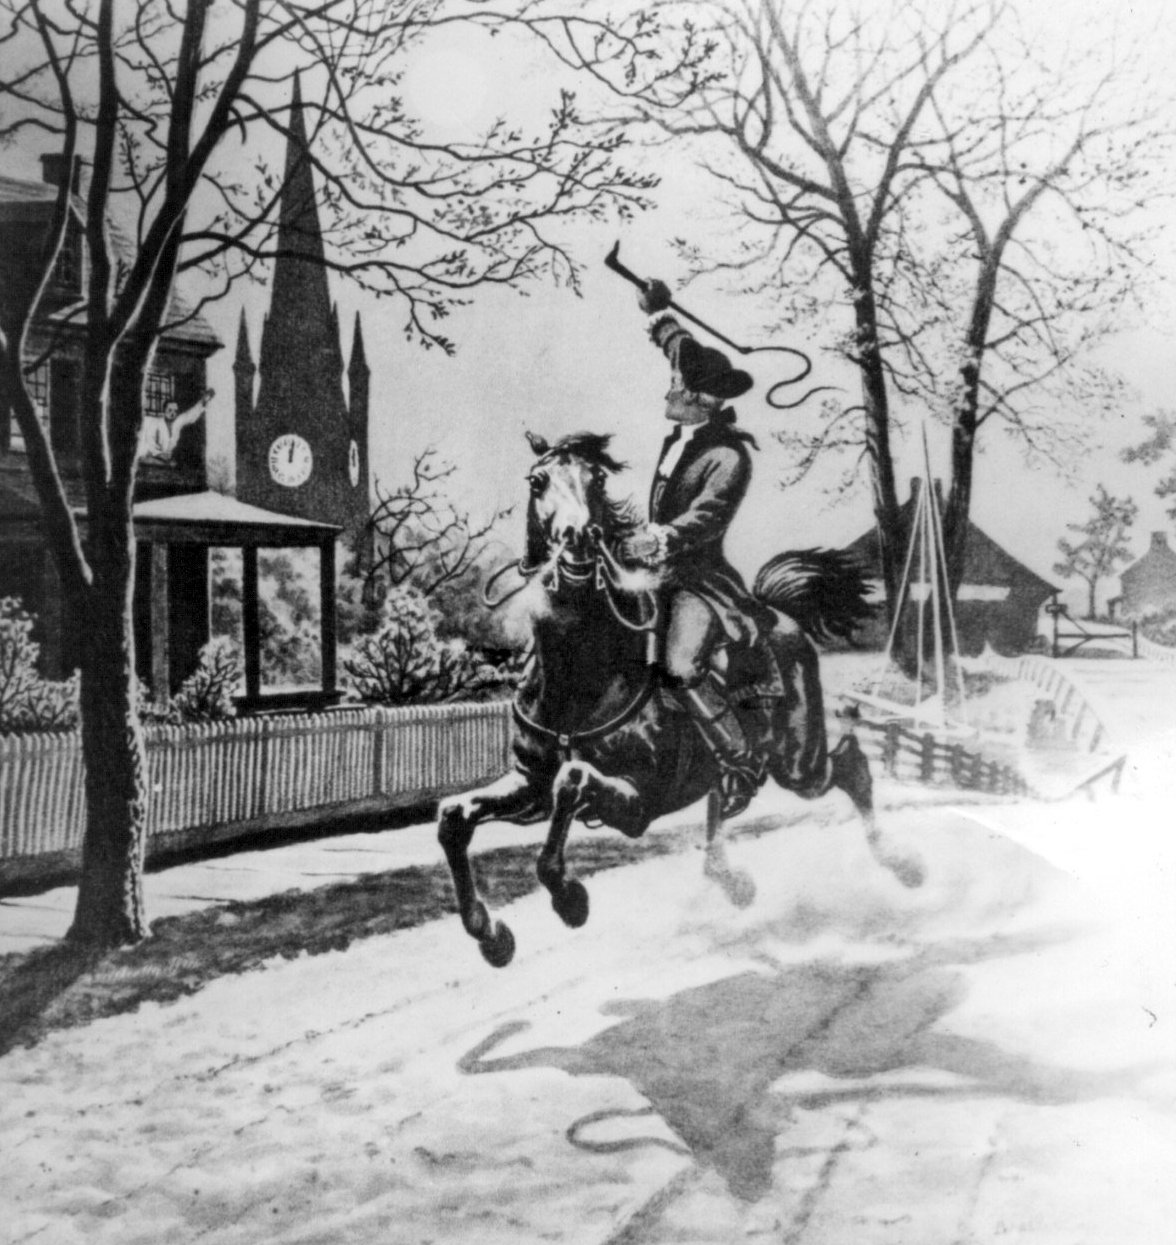 Paul Revere on his Horse